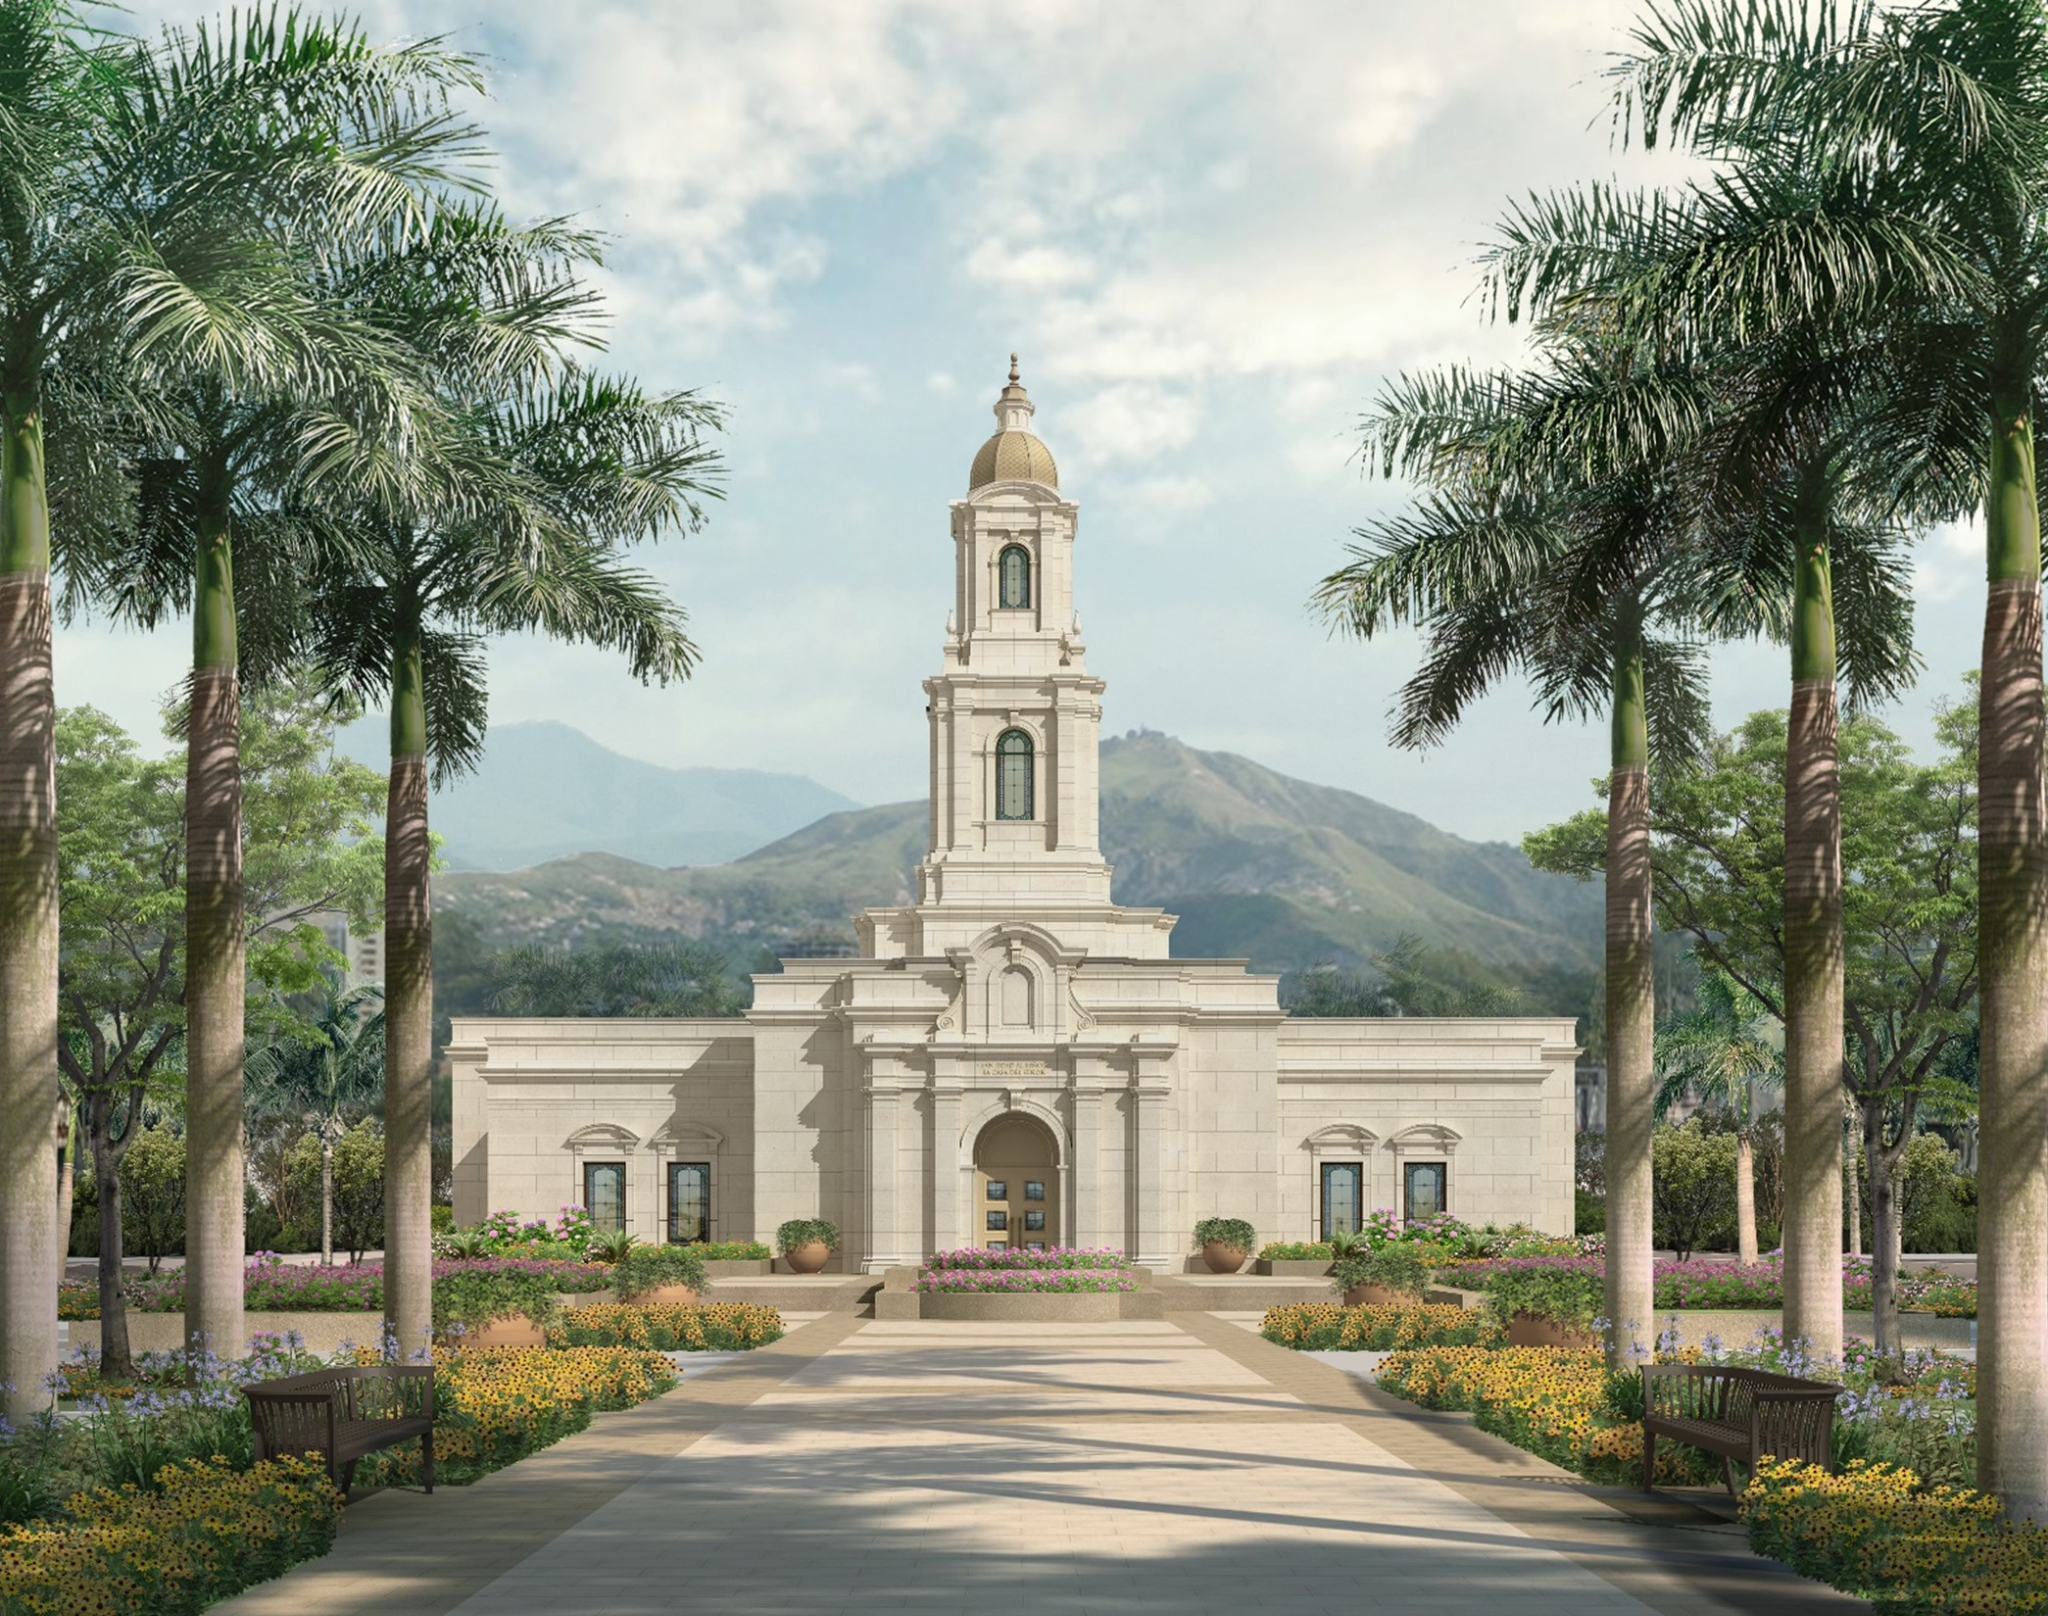 An exterior rendering of the Cali Colombia Temple, one of four temples coming soon to Latin America.